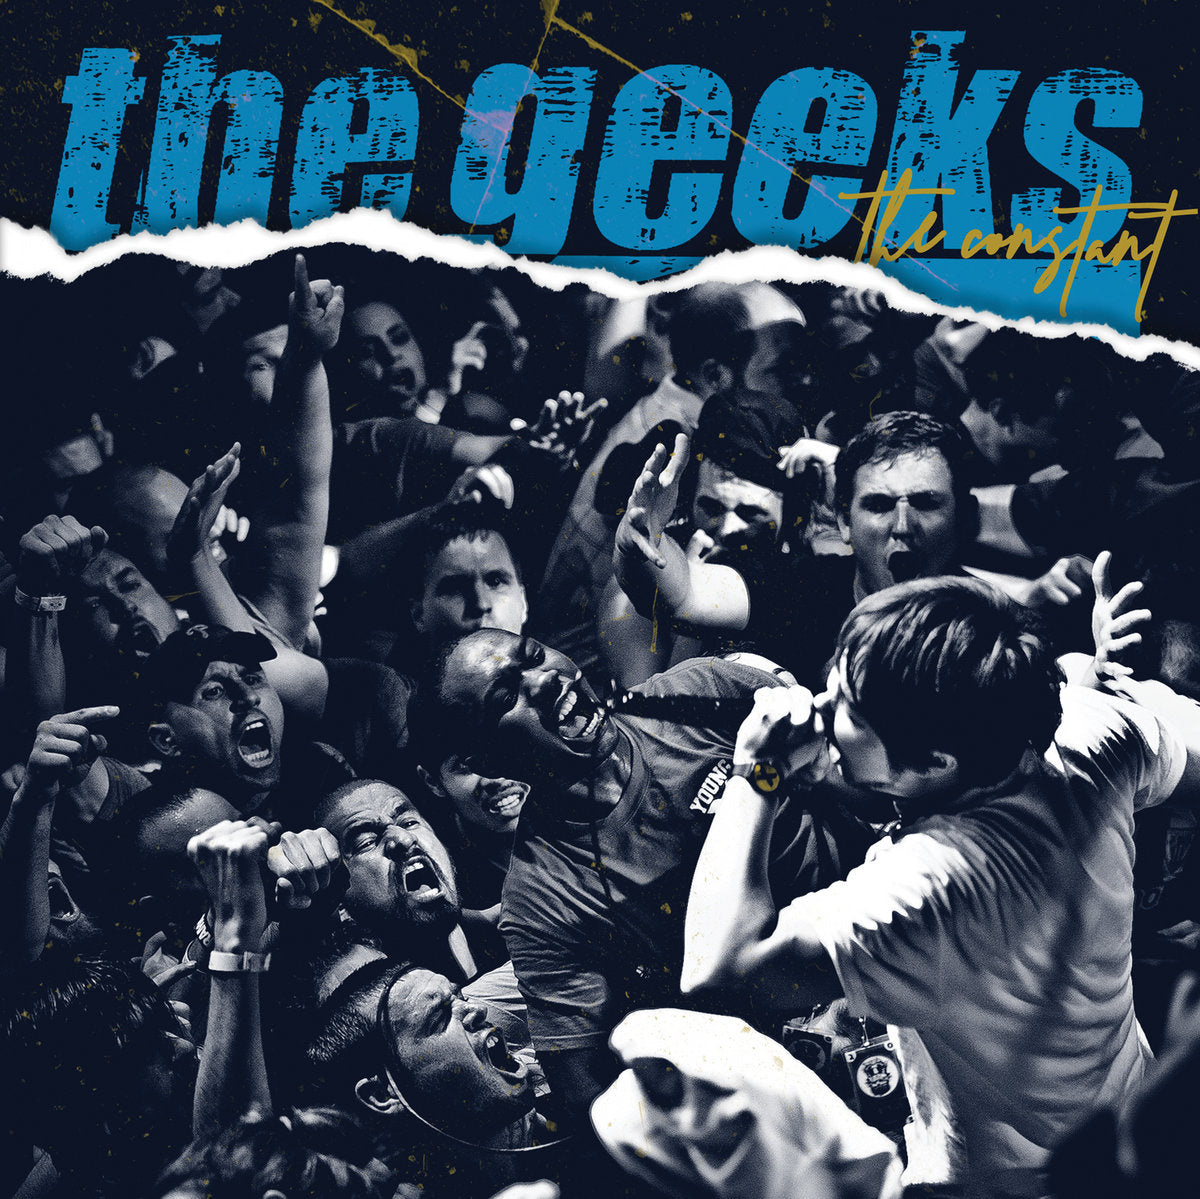 "THE GEEKS 'The Constant' 7"" / COLORED EDITION"